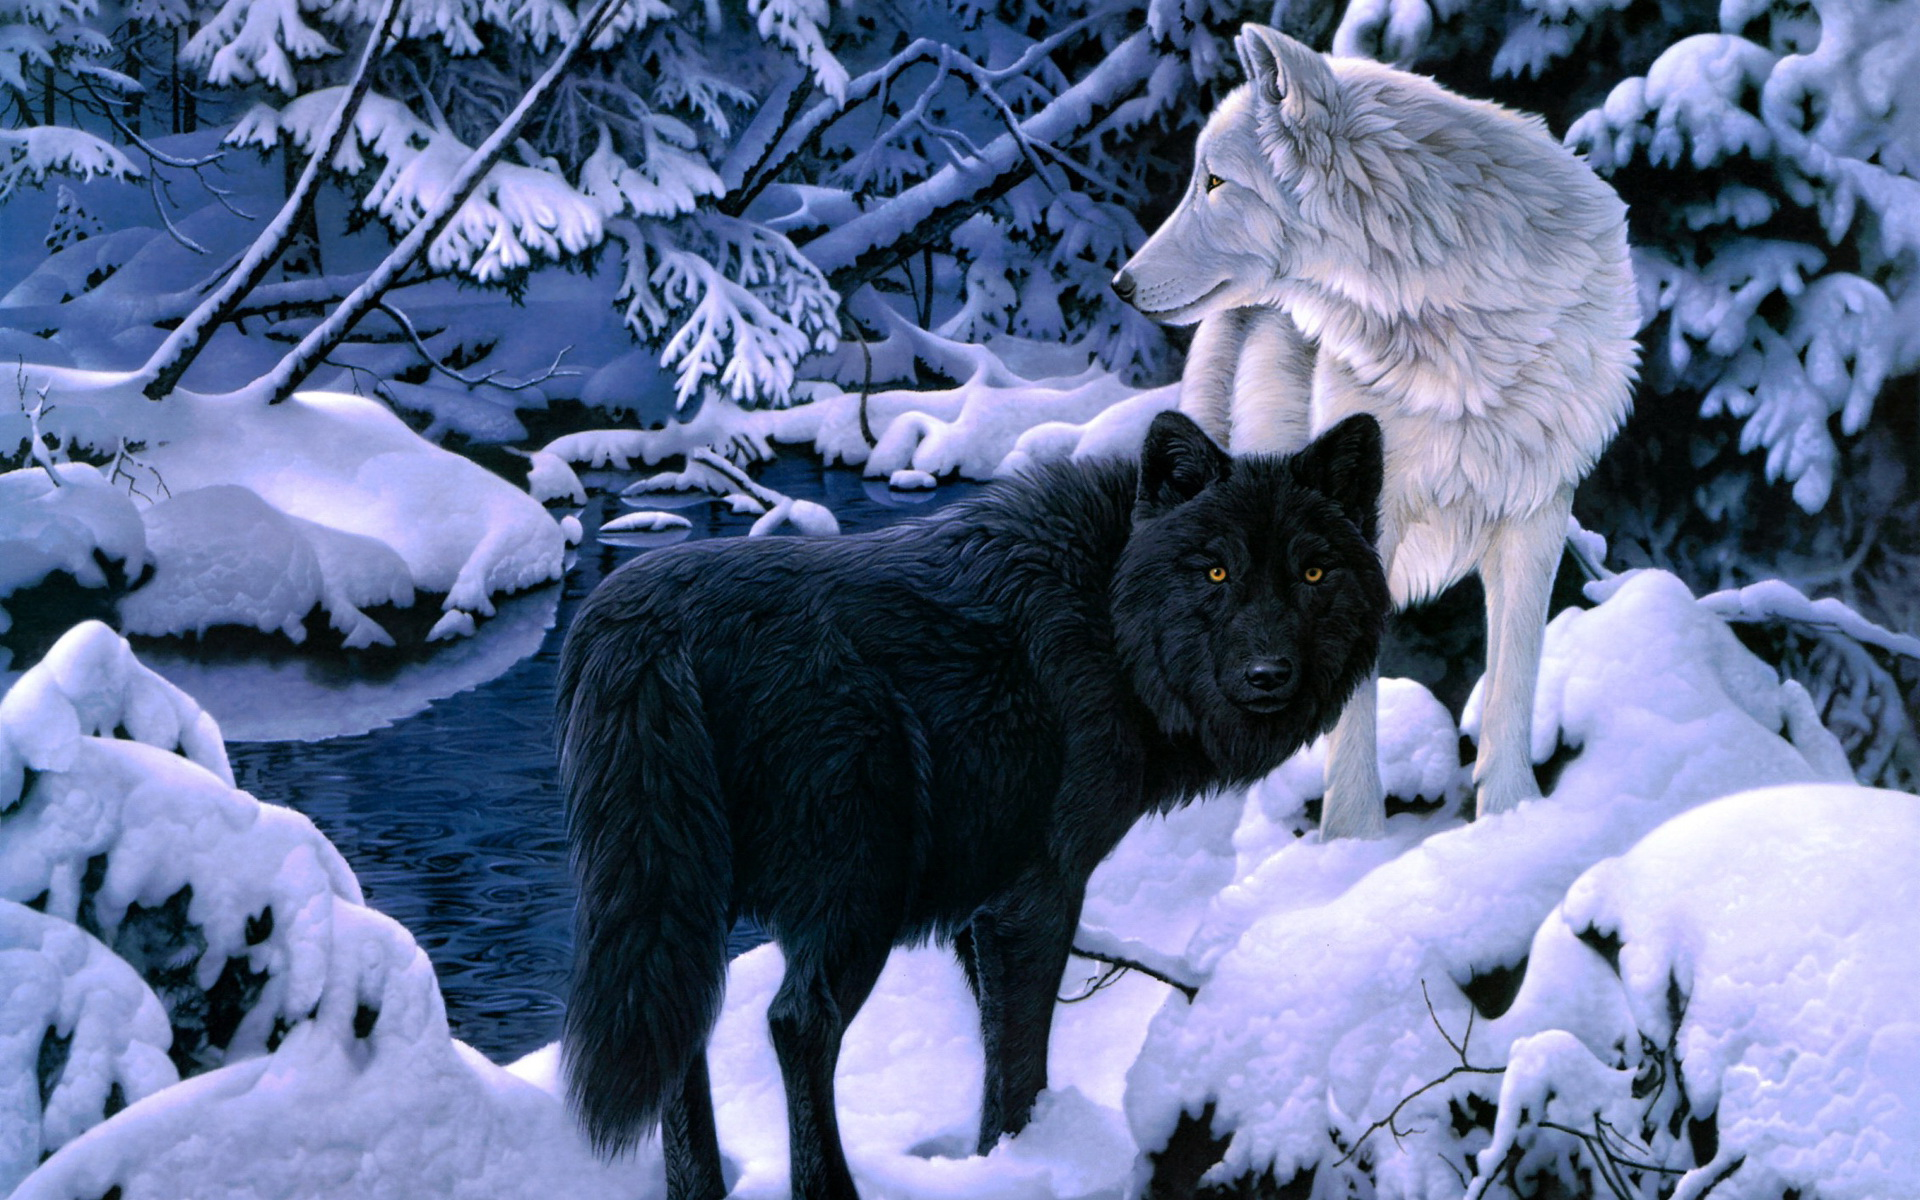 Wolf Wallpapers And Backgrounds Hd 18182 Wallpaper Wallpaper hd 1920x1200